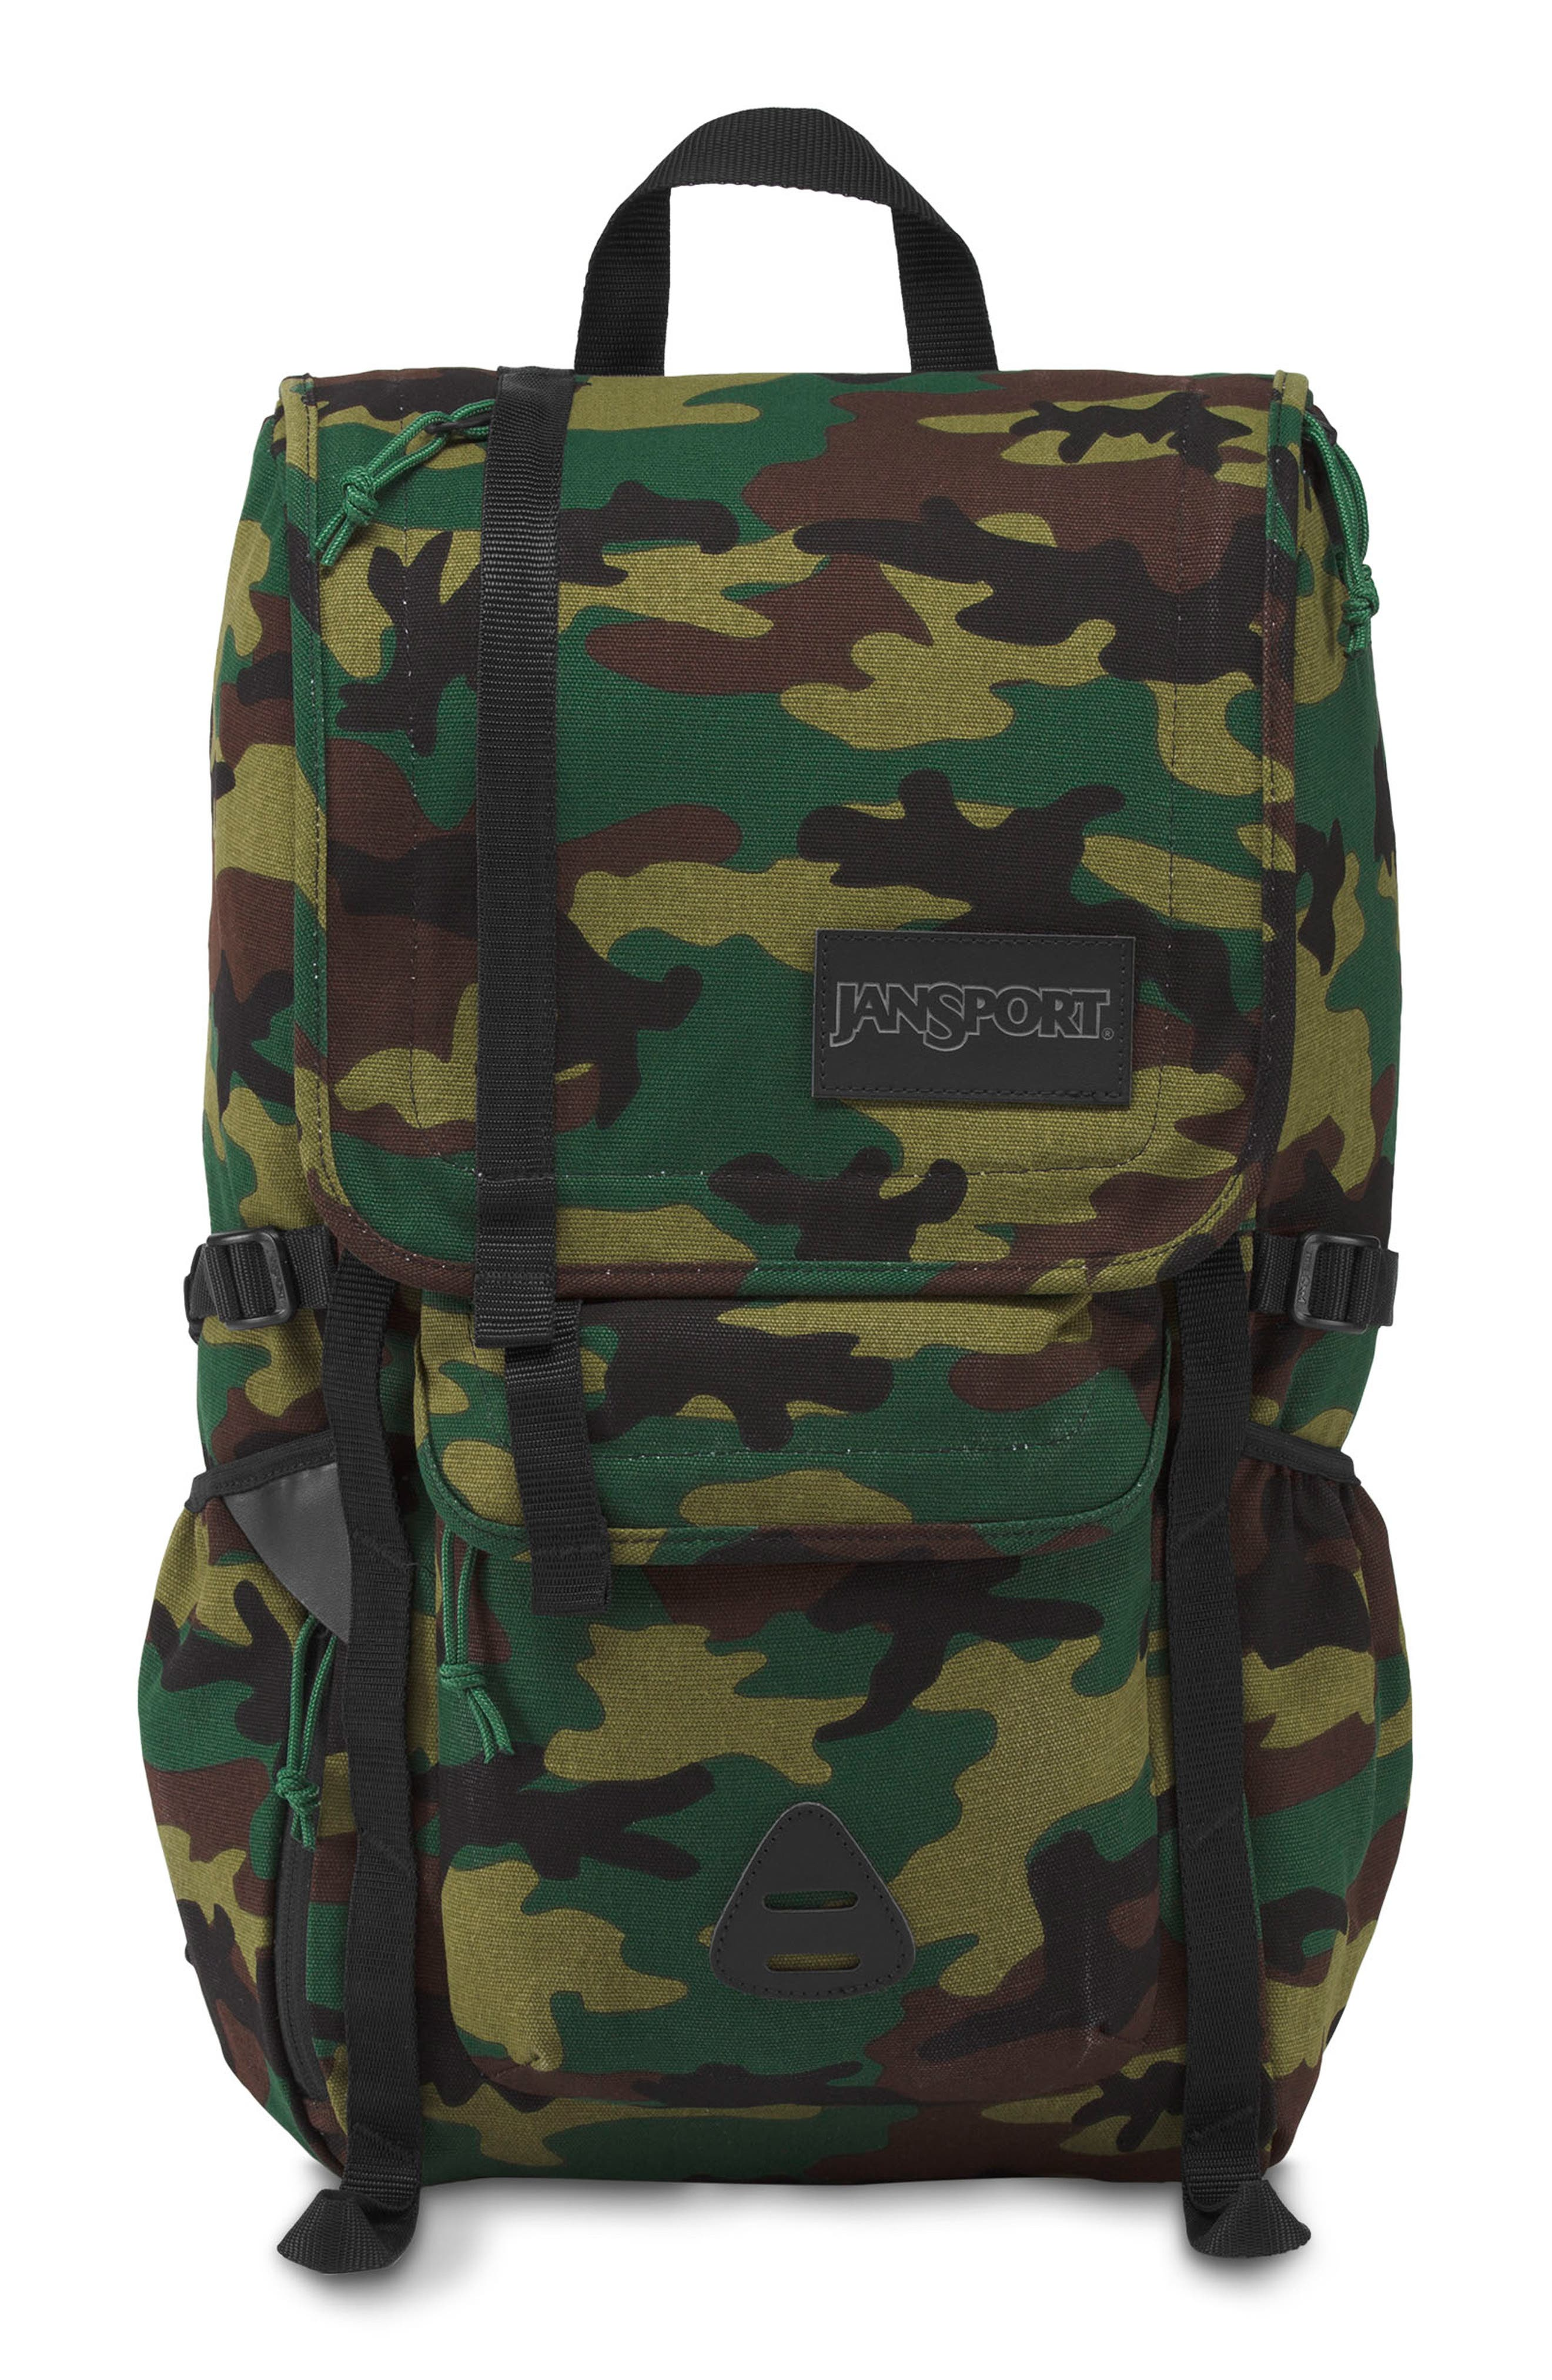 JANSPORT Hatchet Special Edition Backpack - Green in Canvas Surplus Camo